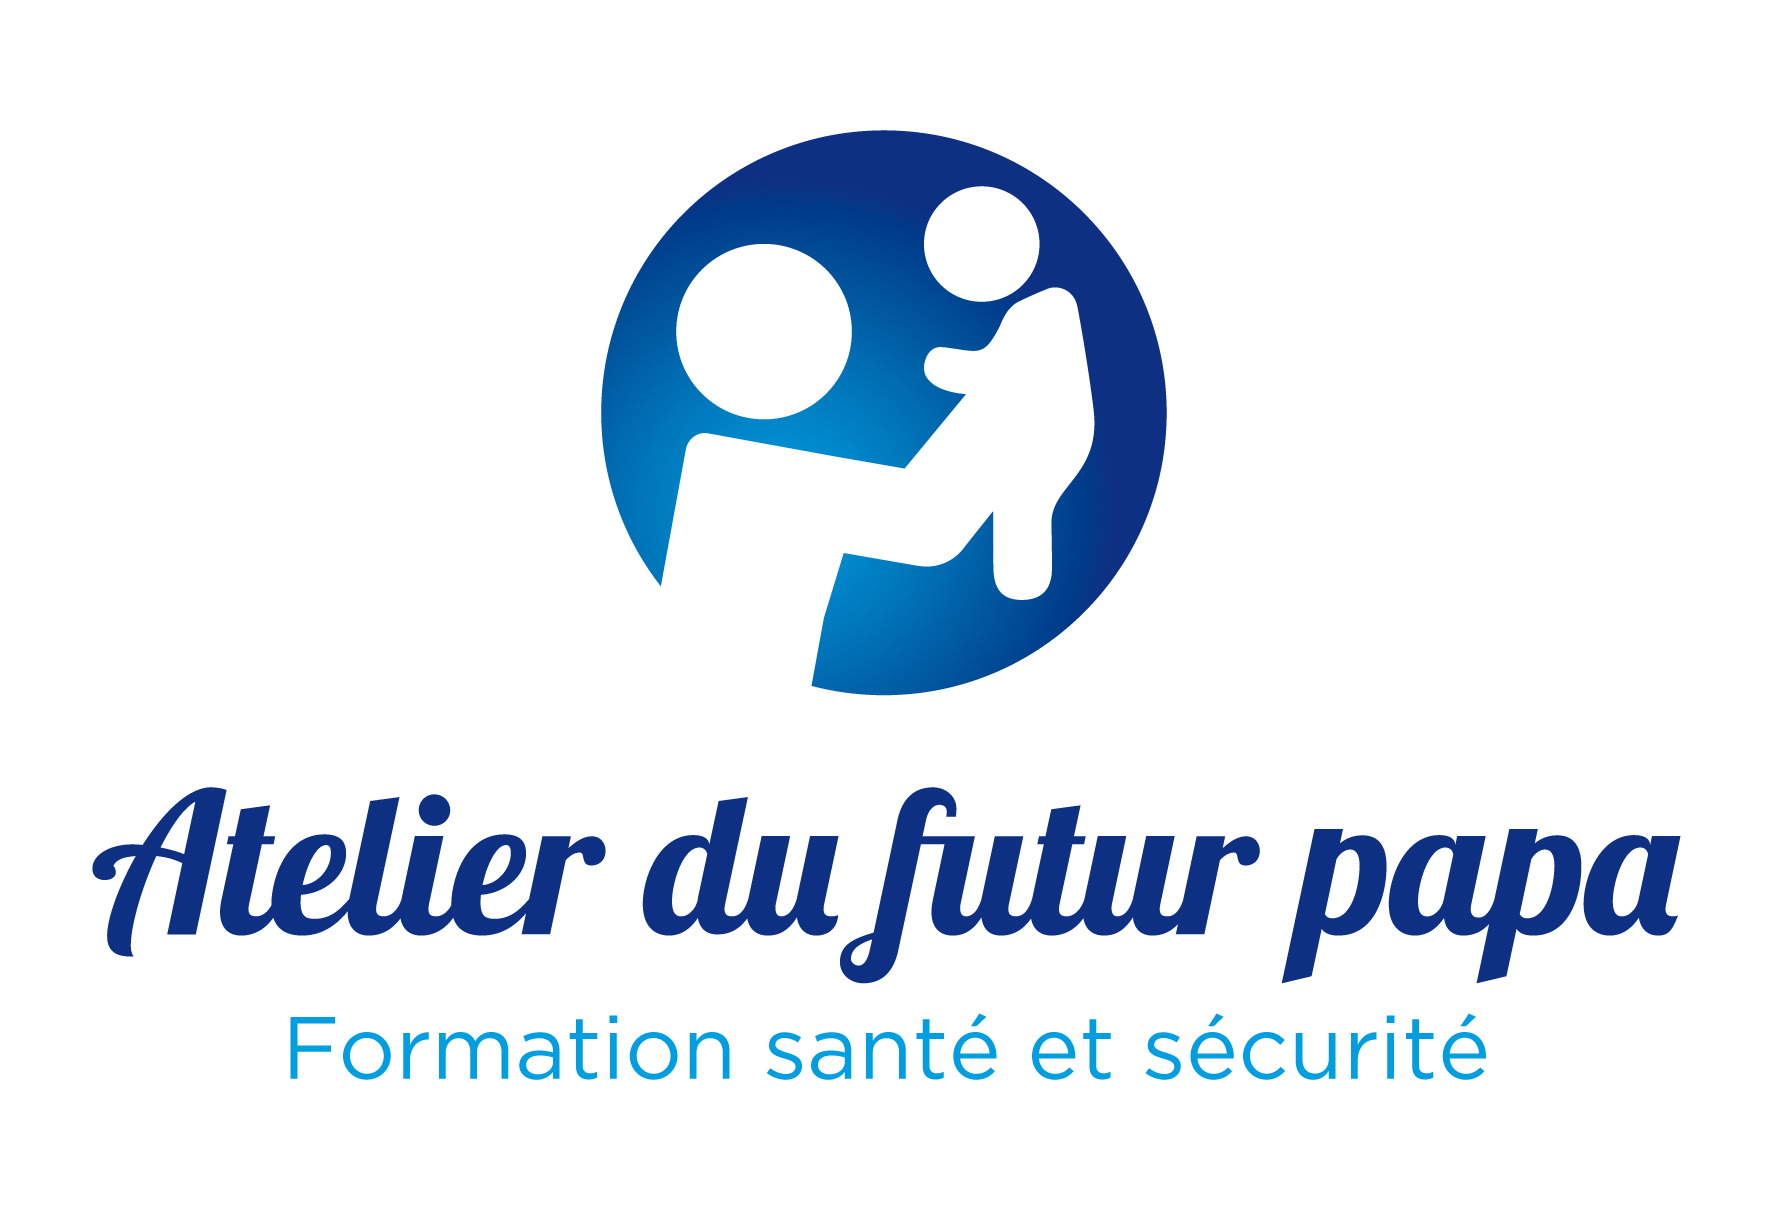 https://www.relations-publiques.pro/wp-content/uploads/pros/20151103082810-p1-document-vuyr.jpg